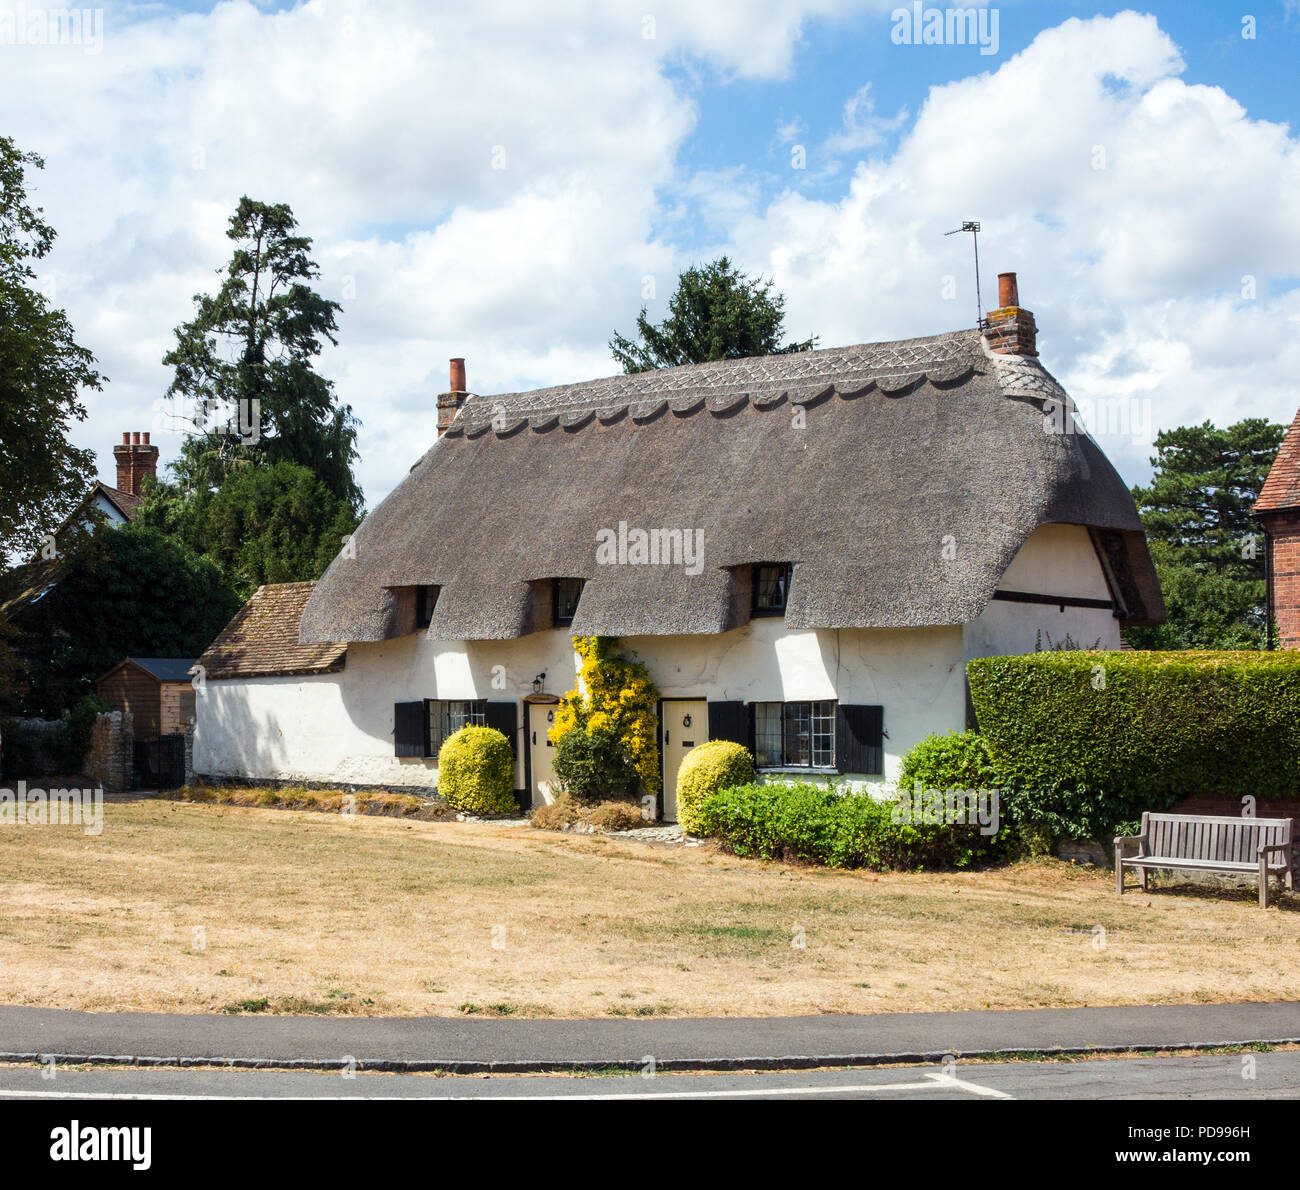 English country cottage with thatched roof on the village green in the village of Cuddington Buckinghamshire England UK - Stock Image